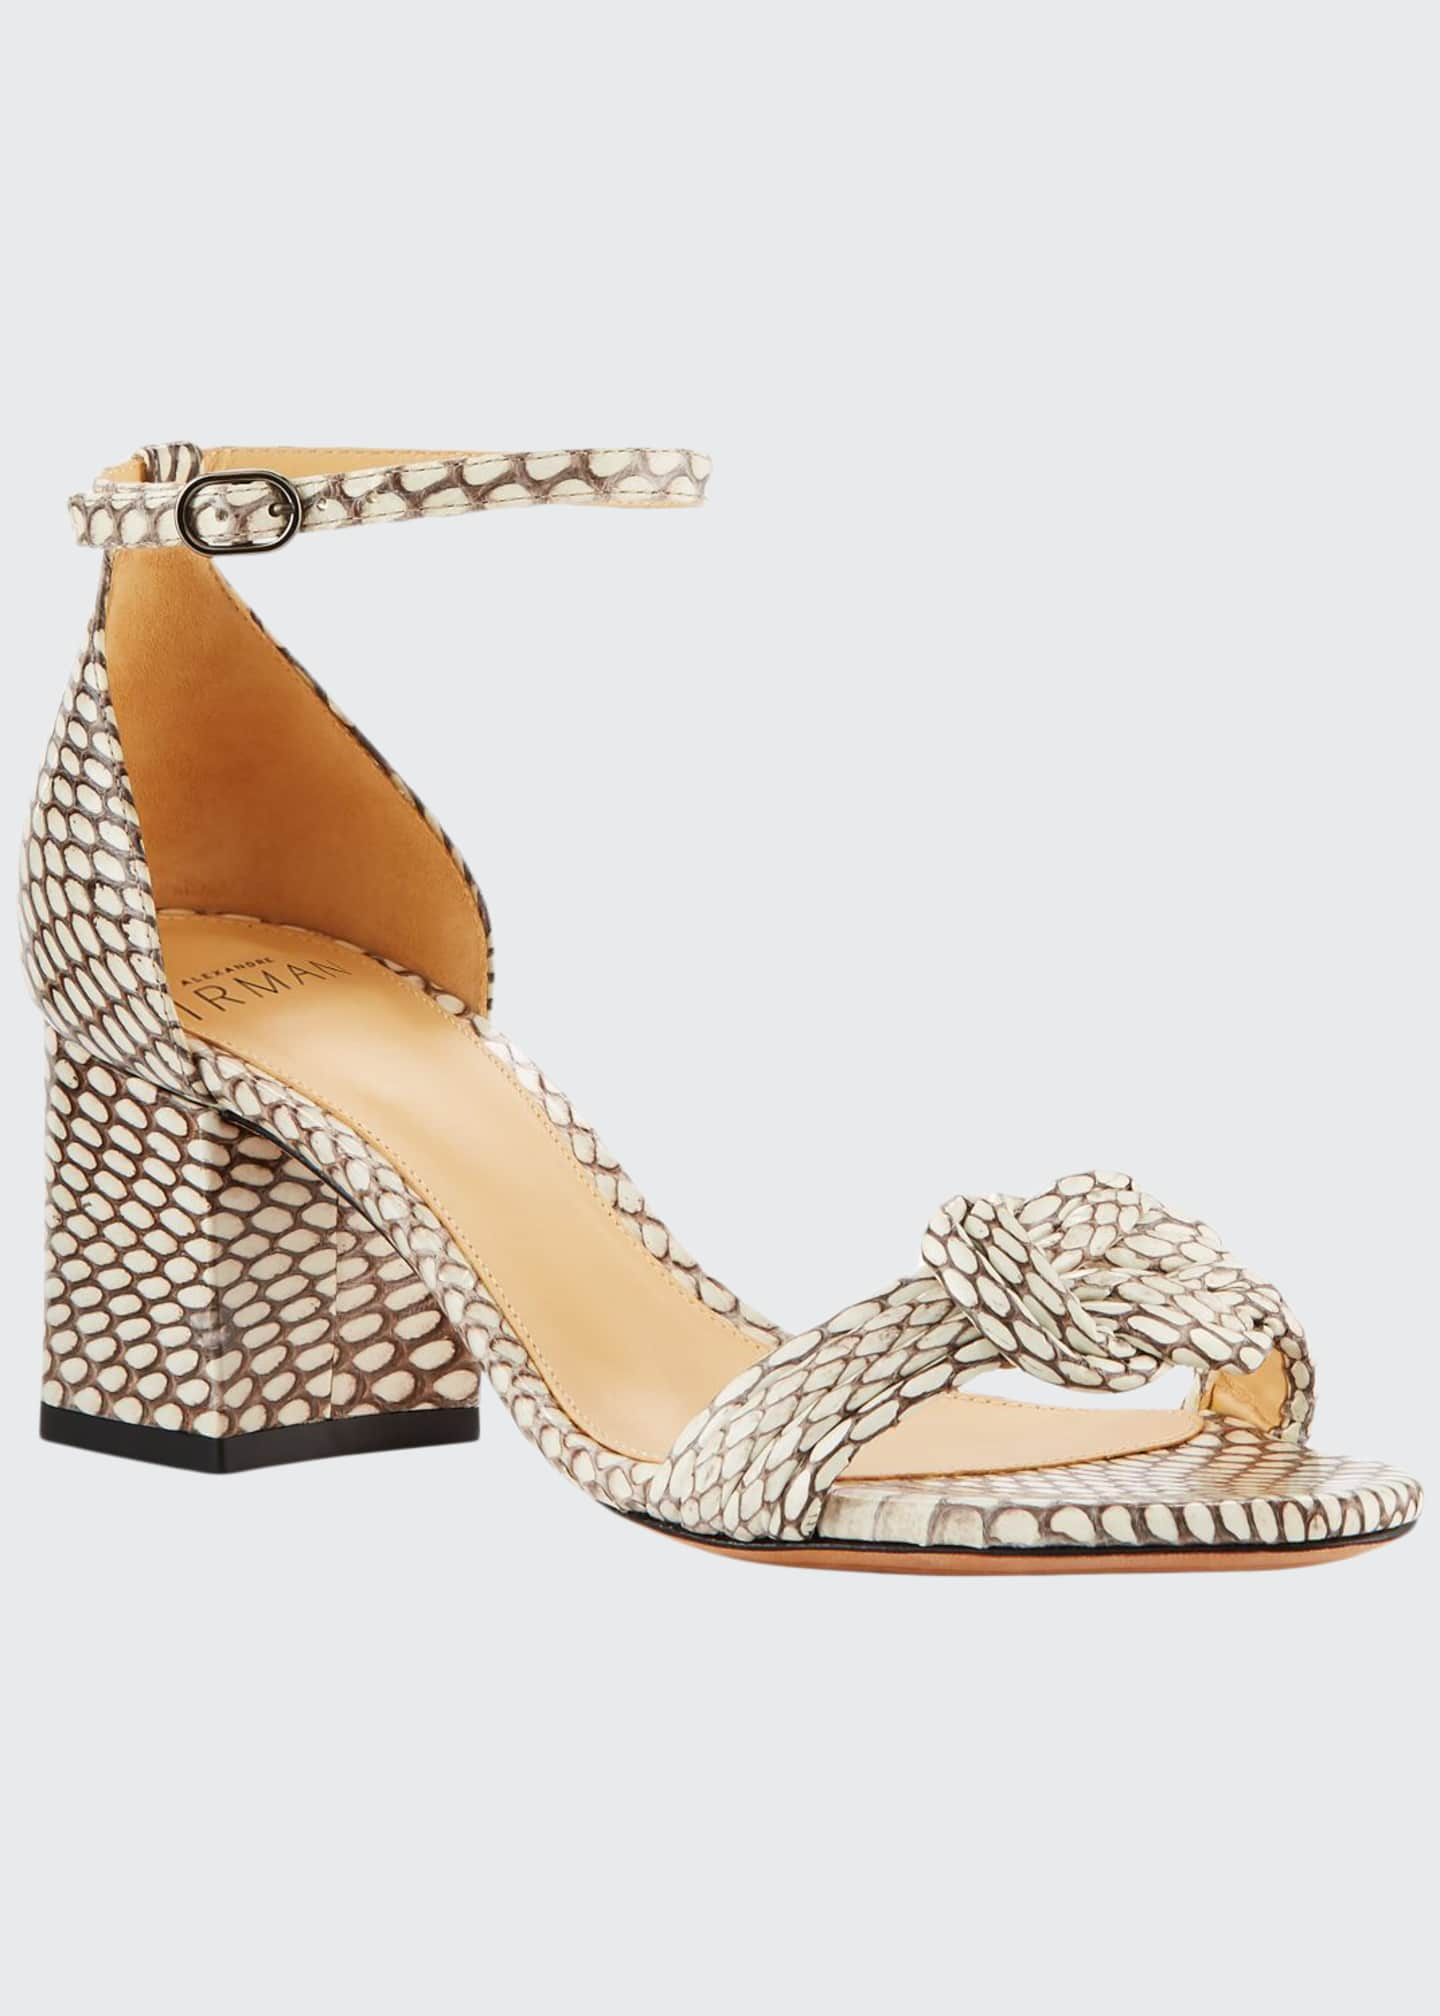 Image 1 of 3: Malica Knot Snakeskin Sandals